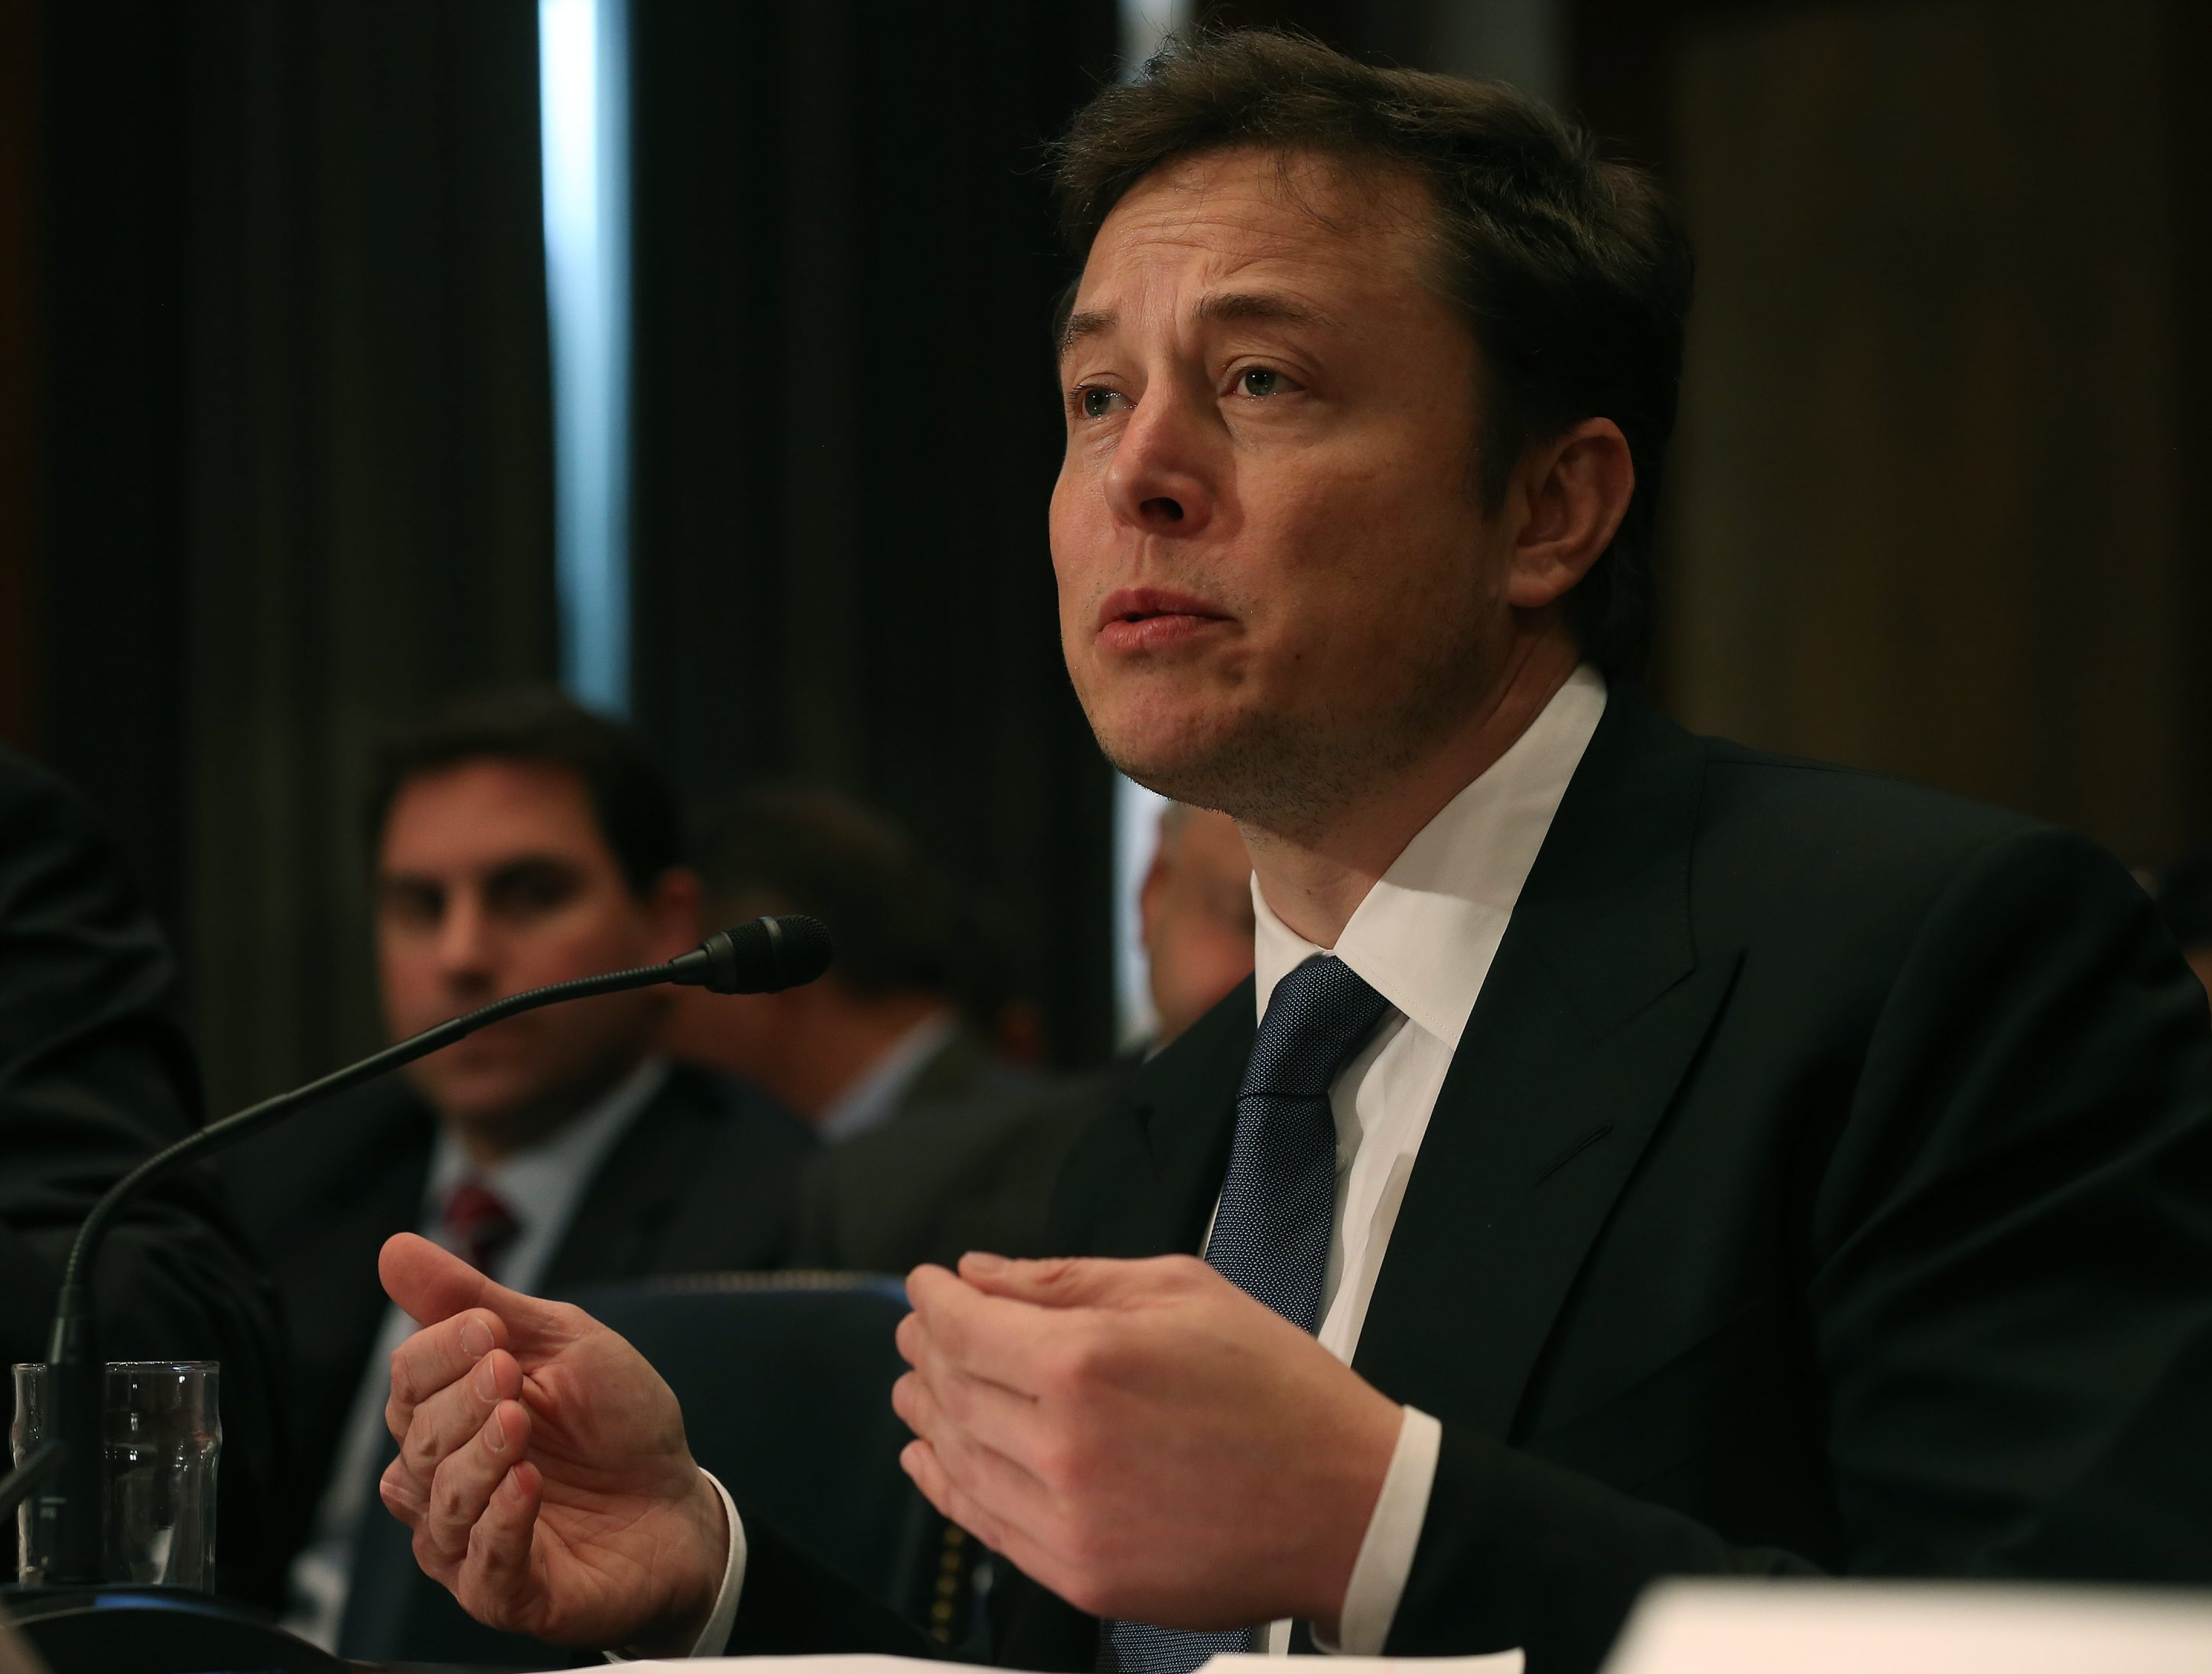 With SpaceX, the rocket company he founded in 2002, Elon Musk hopes to employ recyclable rockets to save humanity, blasting earthlings into space to one day build settlements on Mars.